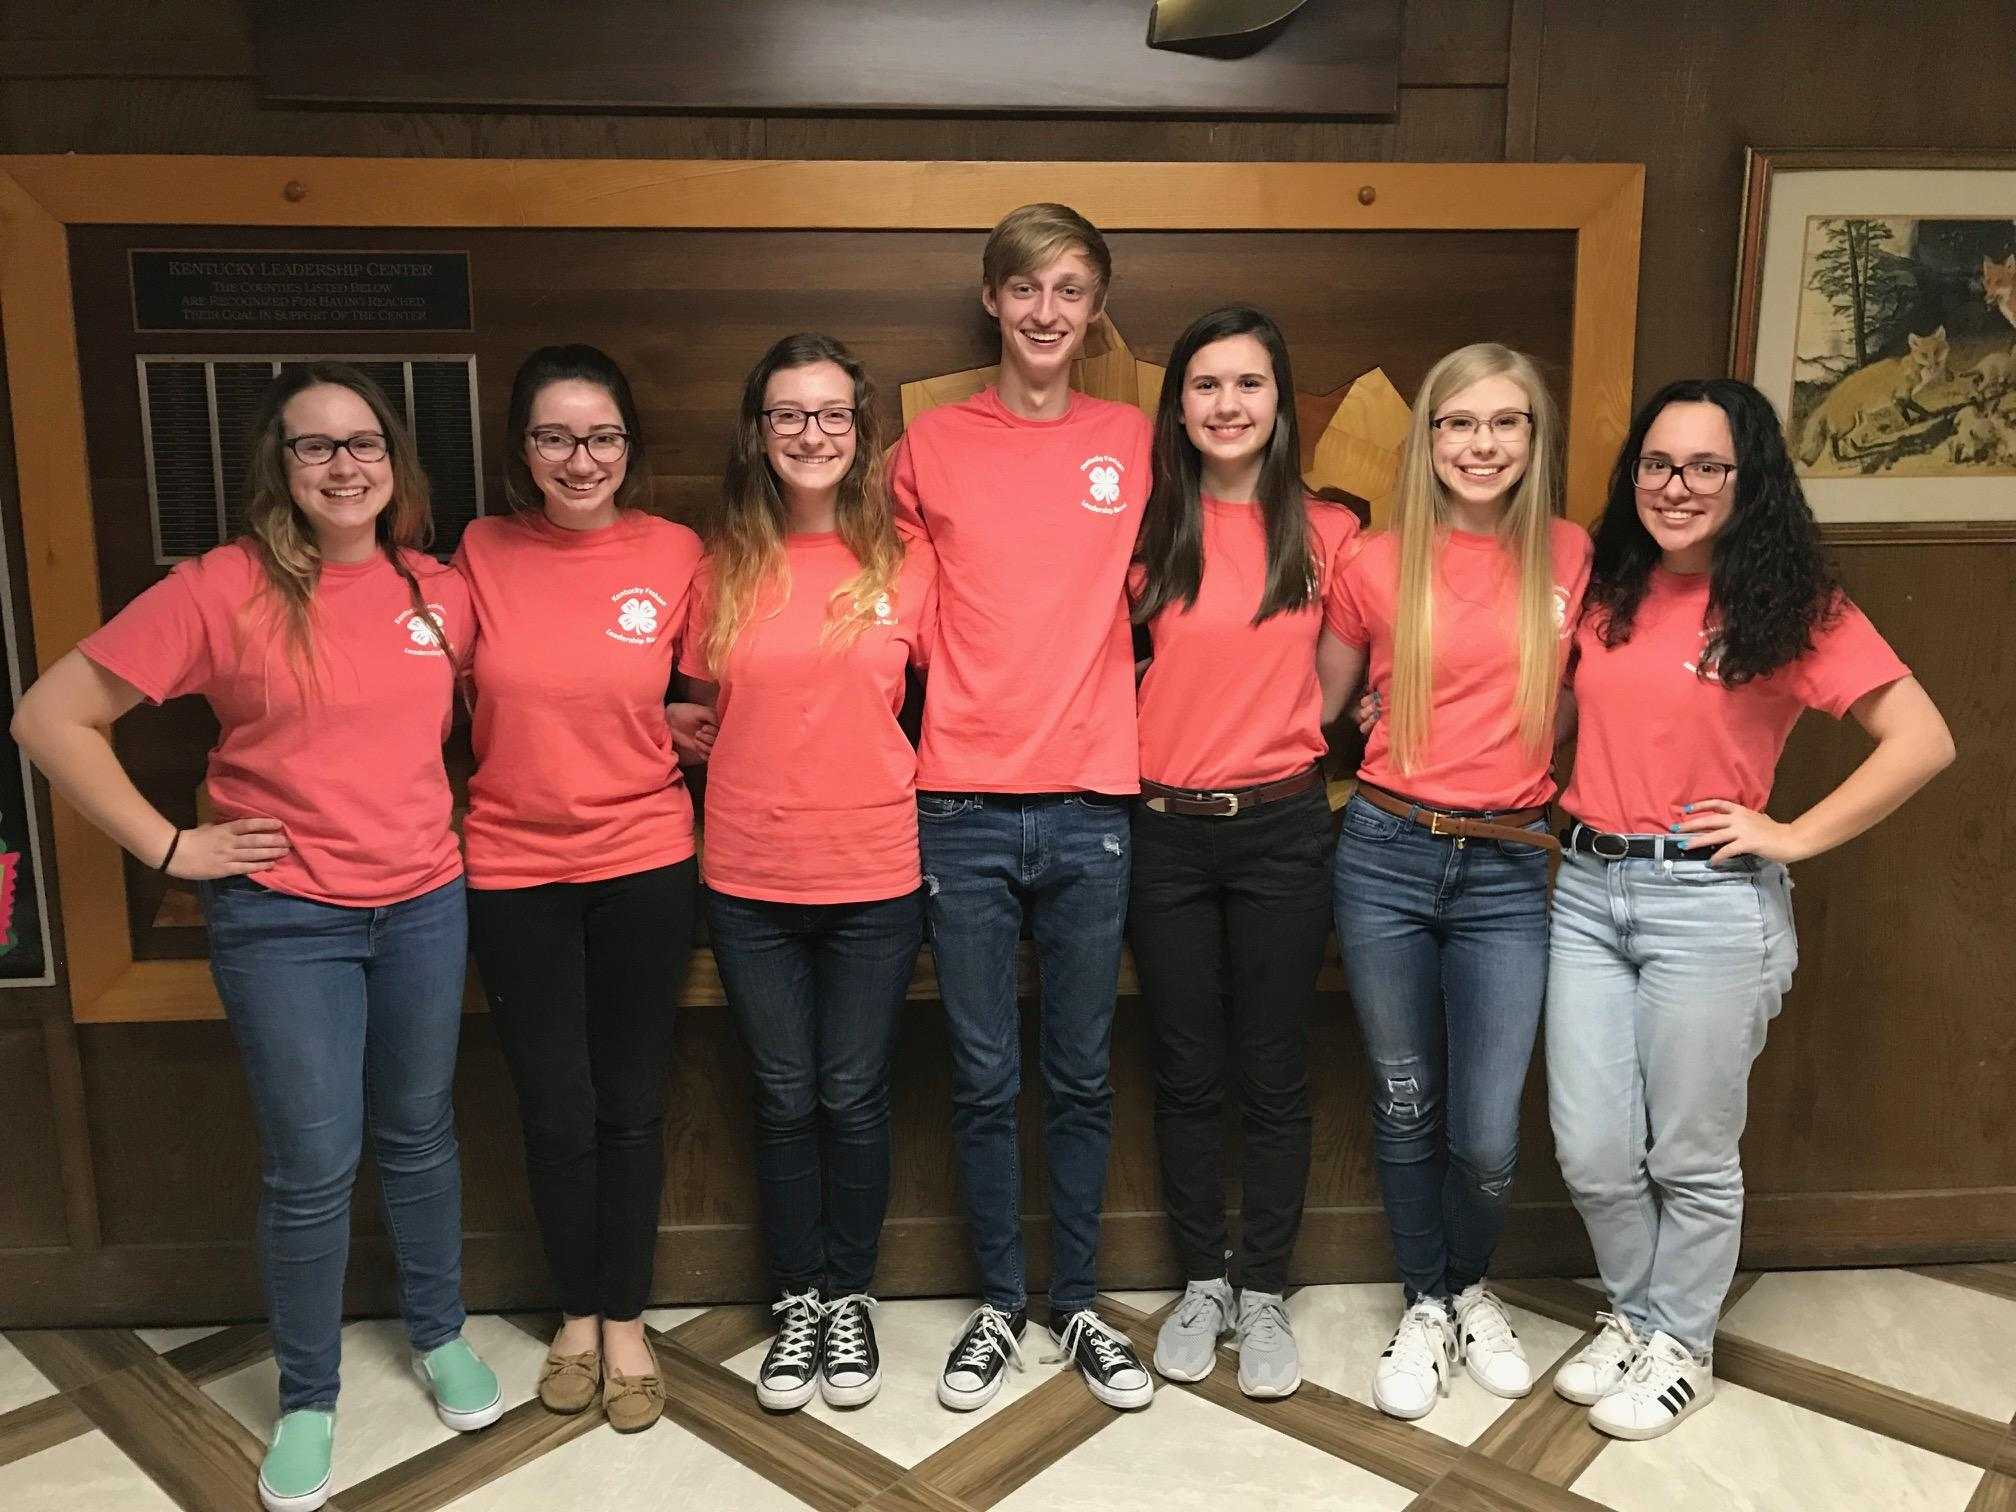 2018-19 Kentucky 4-H Fashion Leadership Board